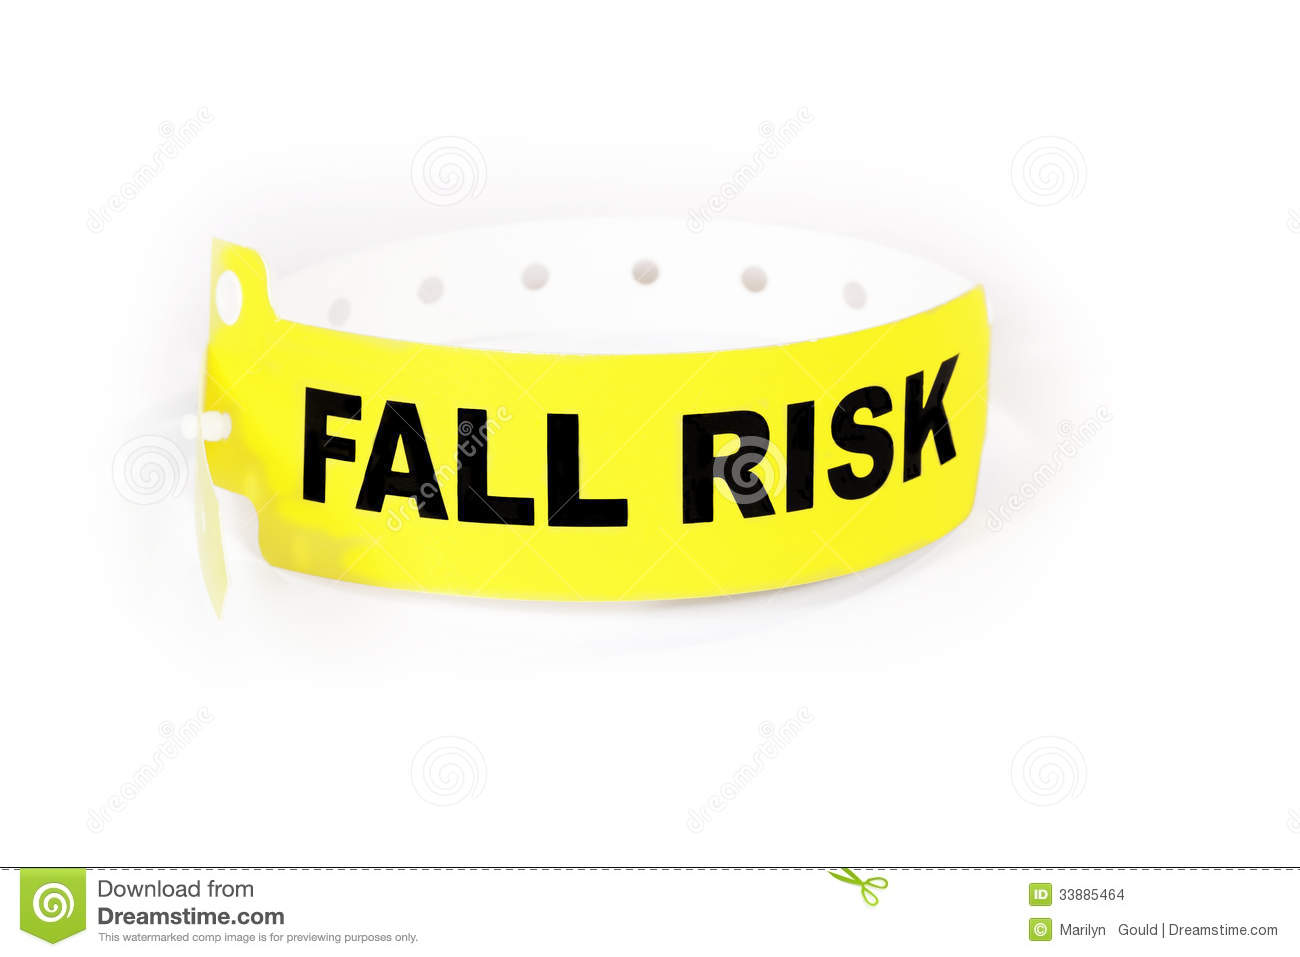 Fall Risk Patient ID Band Stock Images - Image: 33885464